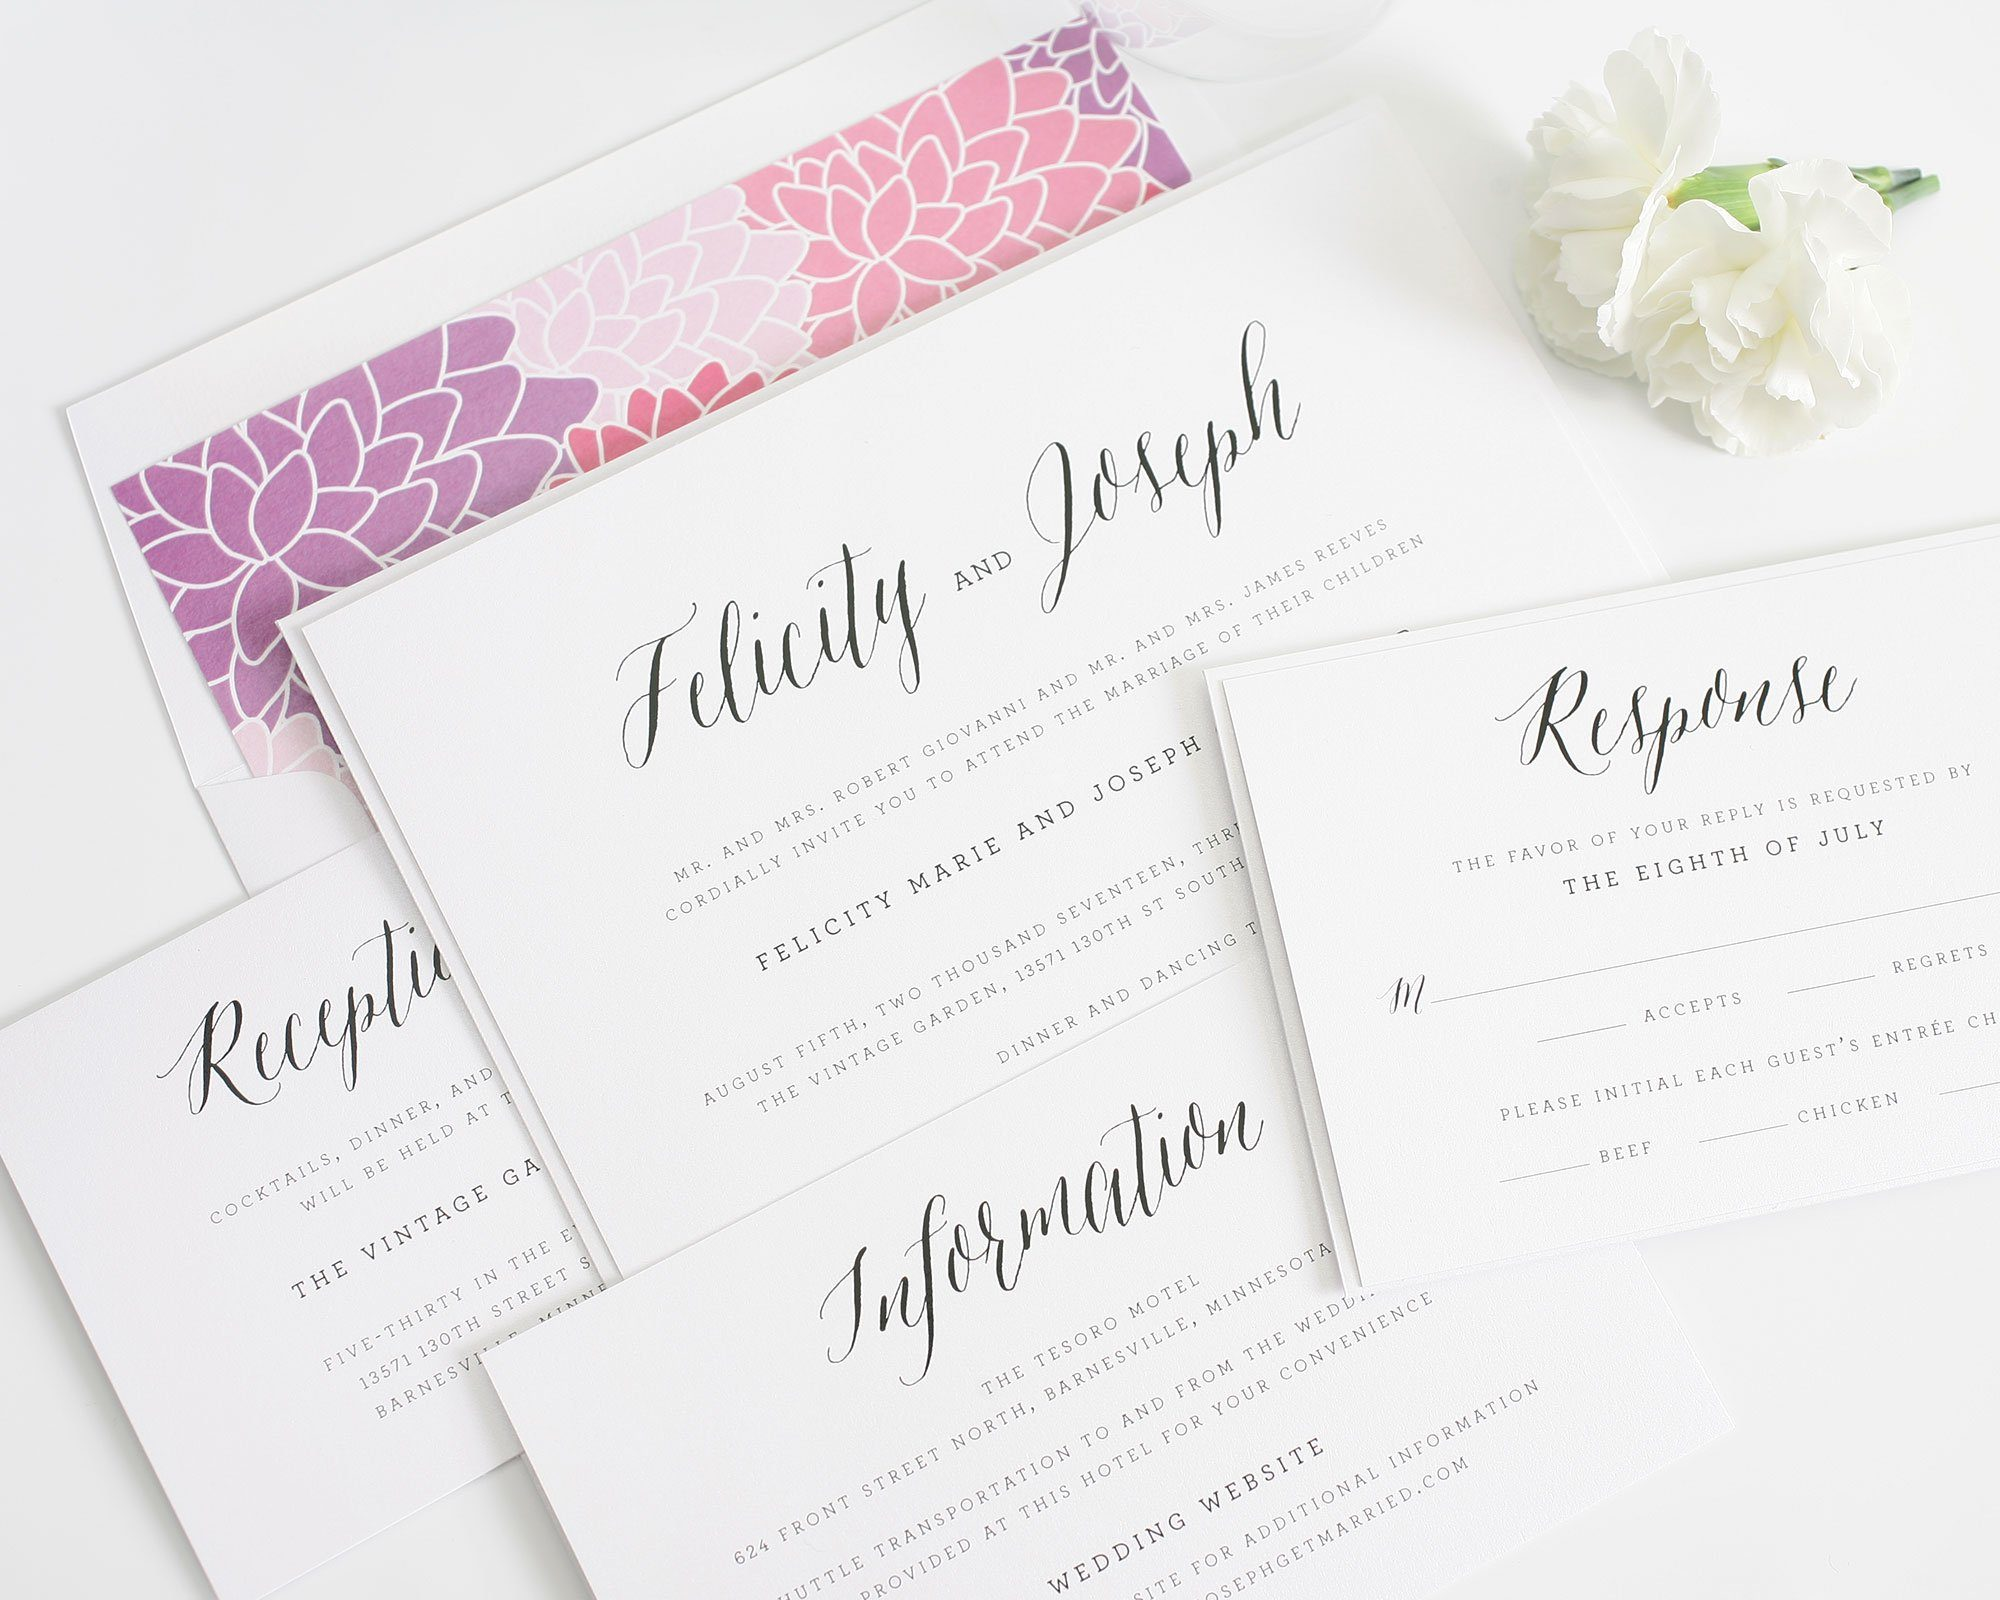 Rustic floral wedding invitation with purple dahlias